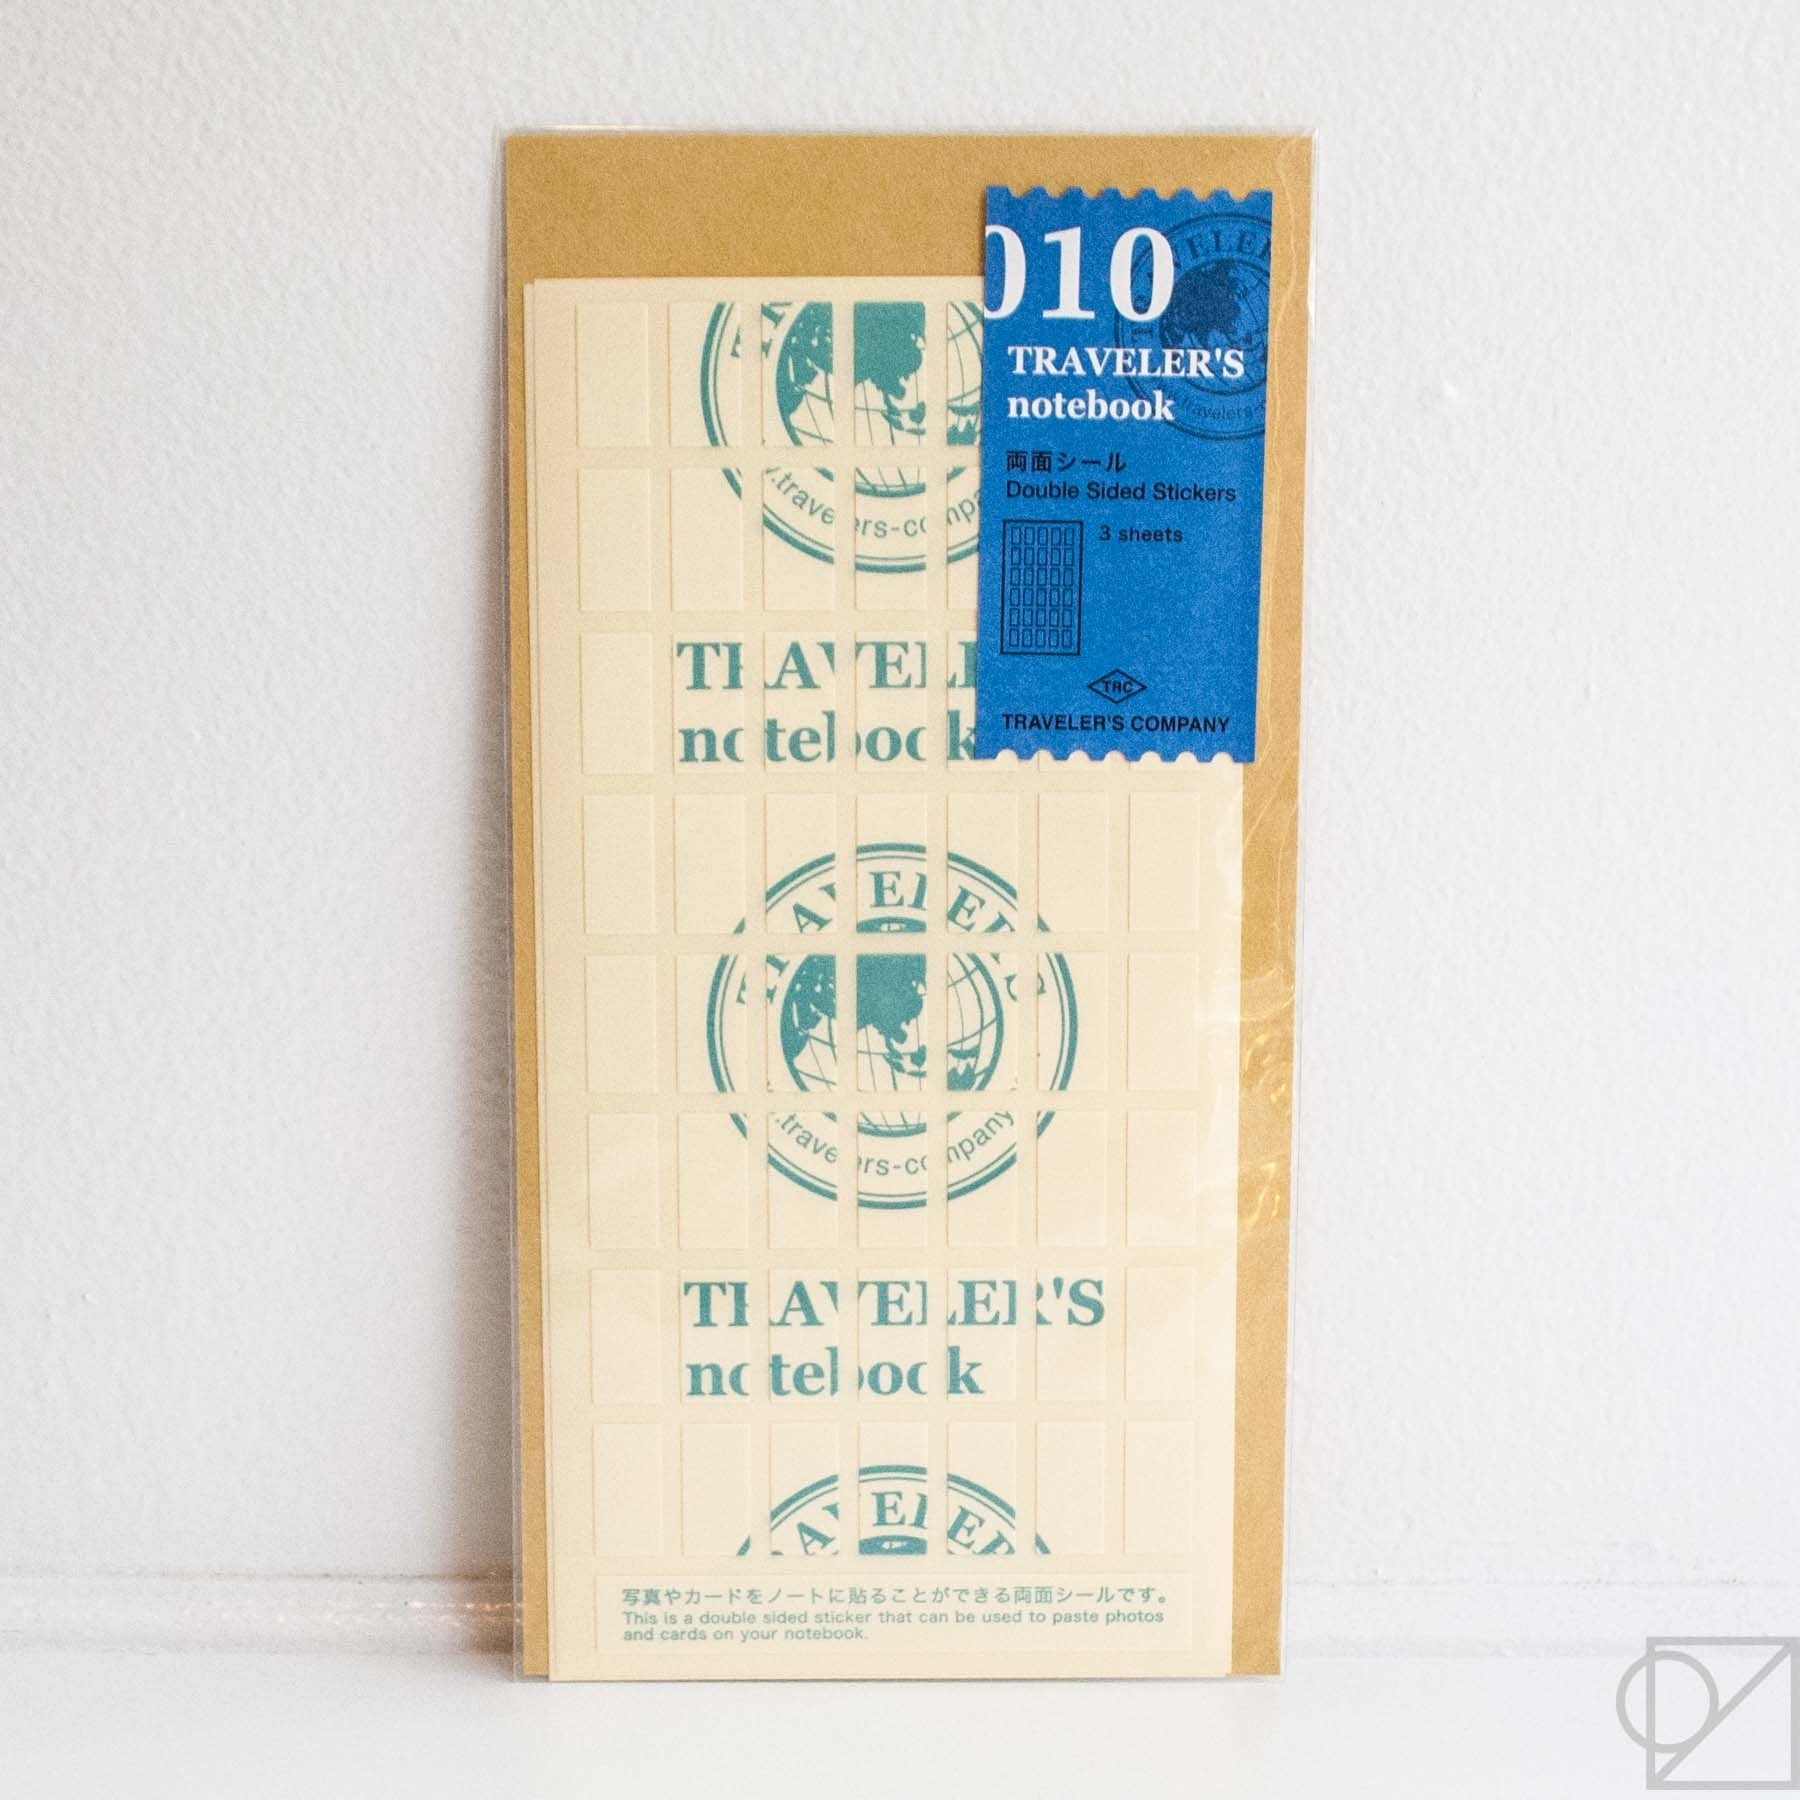 Midori Traveler's Note: 010 Double Sided Stickers